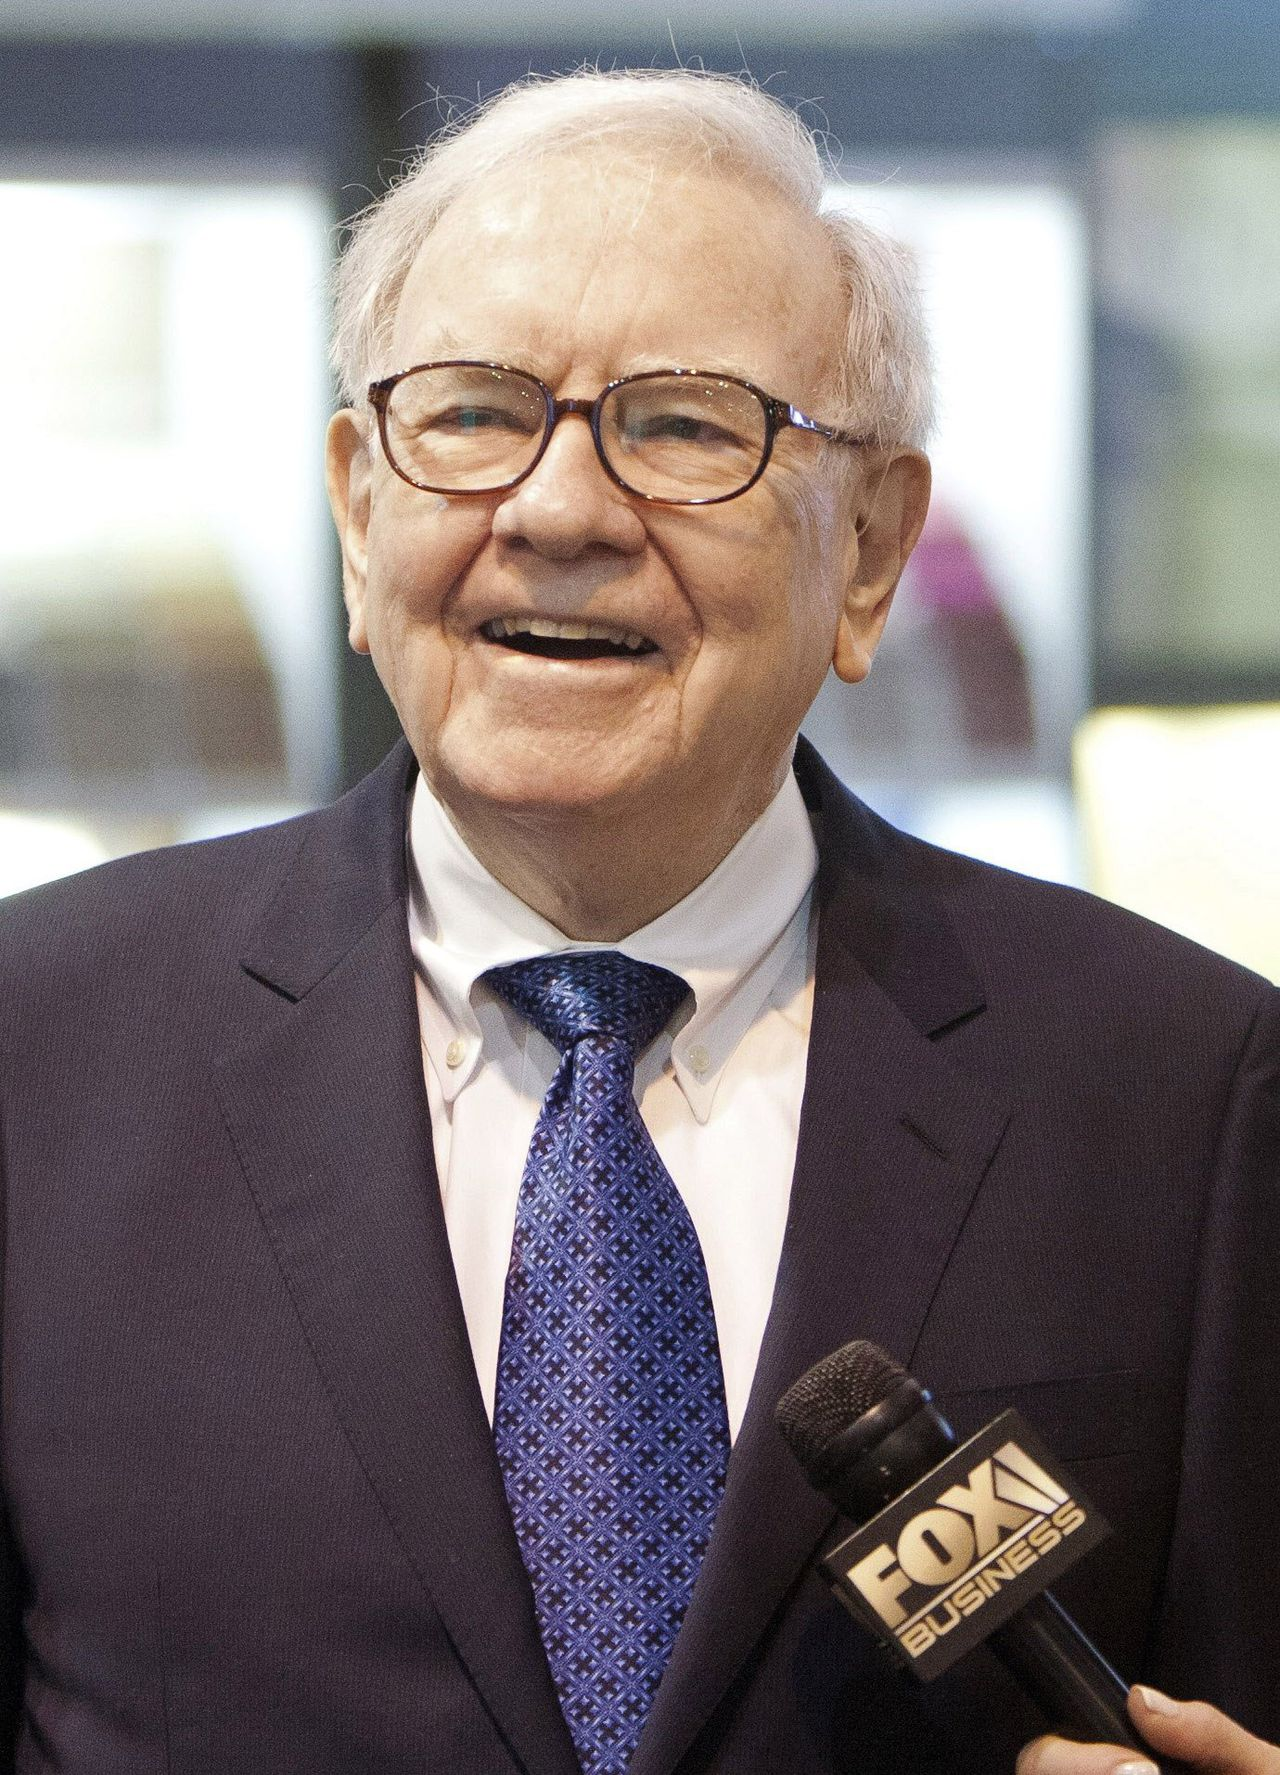 Warren Buffett tours the trade show floor during the Berkshire Hathaway Annual shareholders meeting in Omaha, in this May 5, 2012 file photo. Buffett's conglomerate Berkshire Hathaway Inc reported a larger profit for the third quarter November 2, 2012, as strength in the railroad and utility businesses, as well as investment gains, offset weaker results in the insurance units. REUTERS/Lane Hickenbottom/Files (UNITED STATES - Tags: BUSINESS)